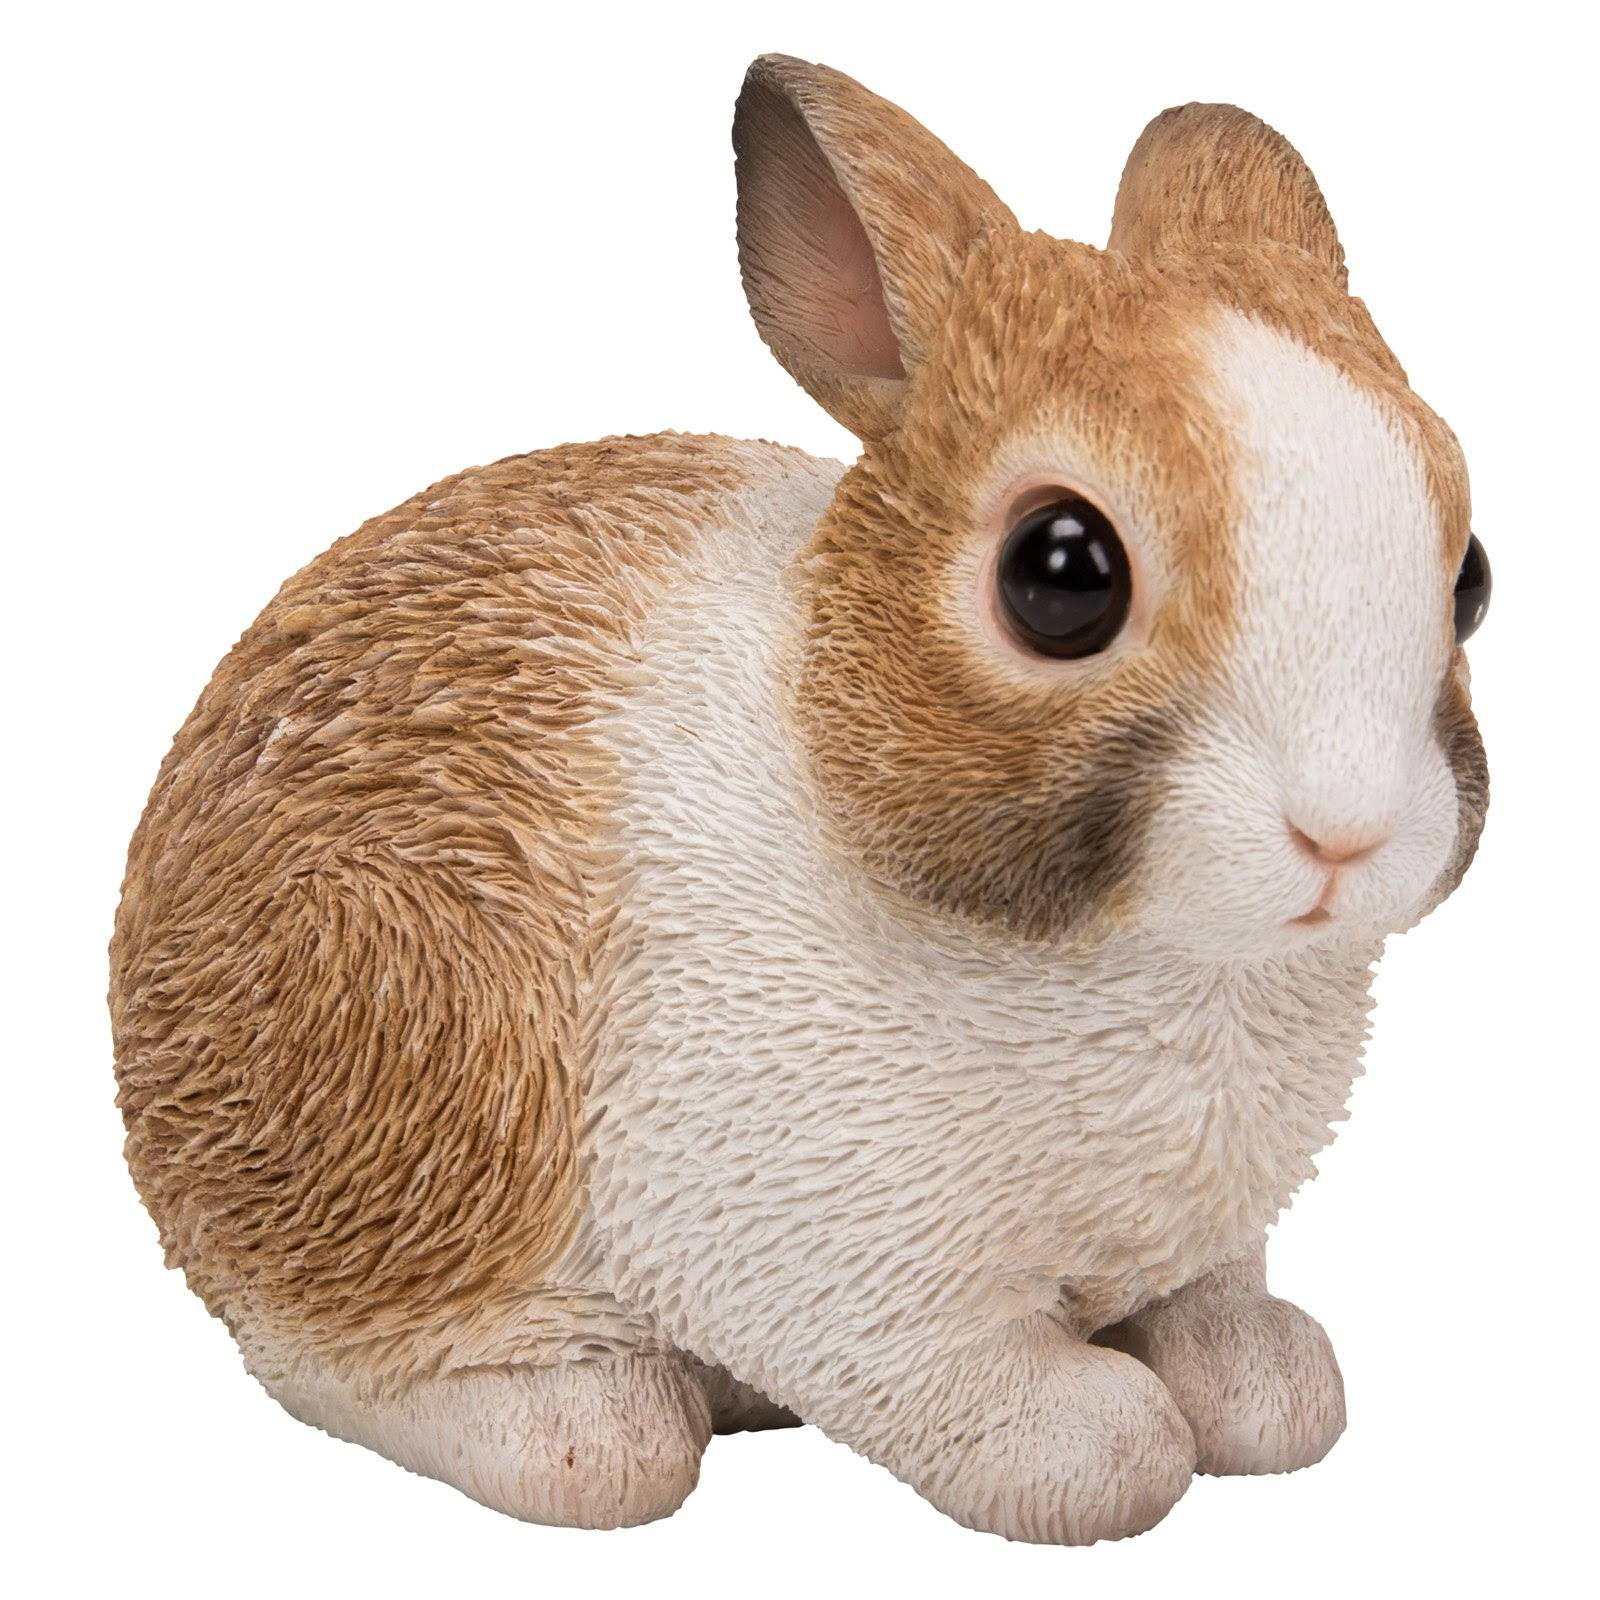 Natures Gallery White and Brown Rabbit Statue, Size: Small